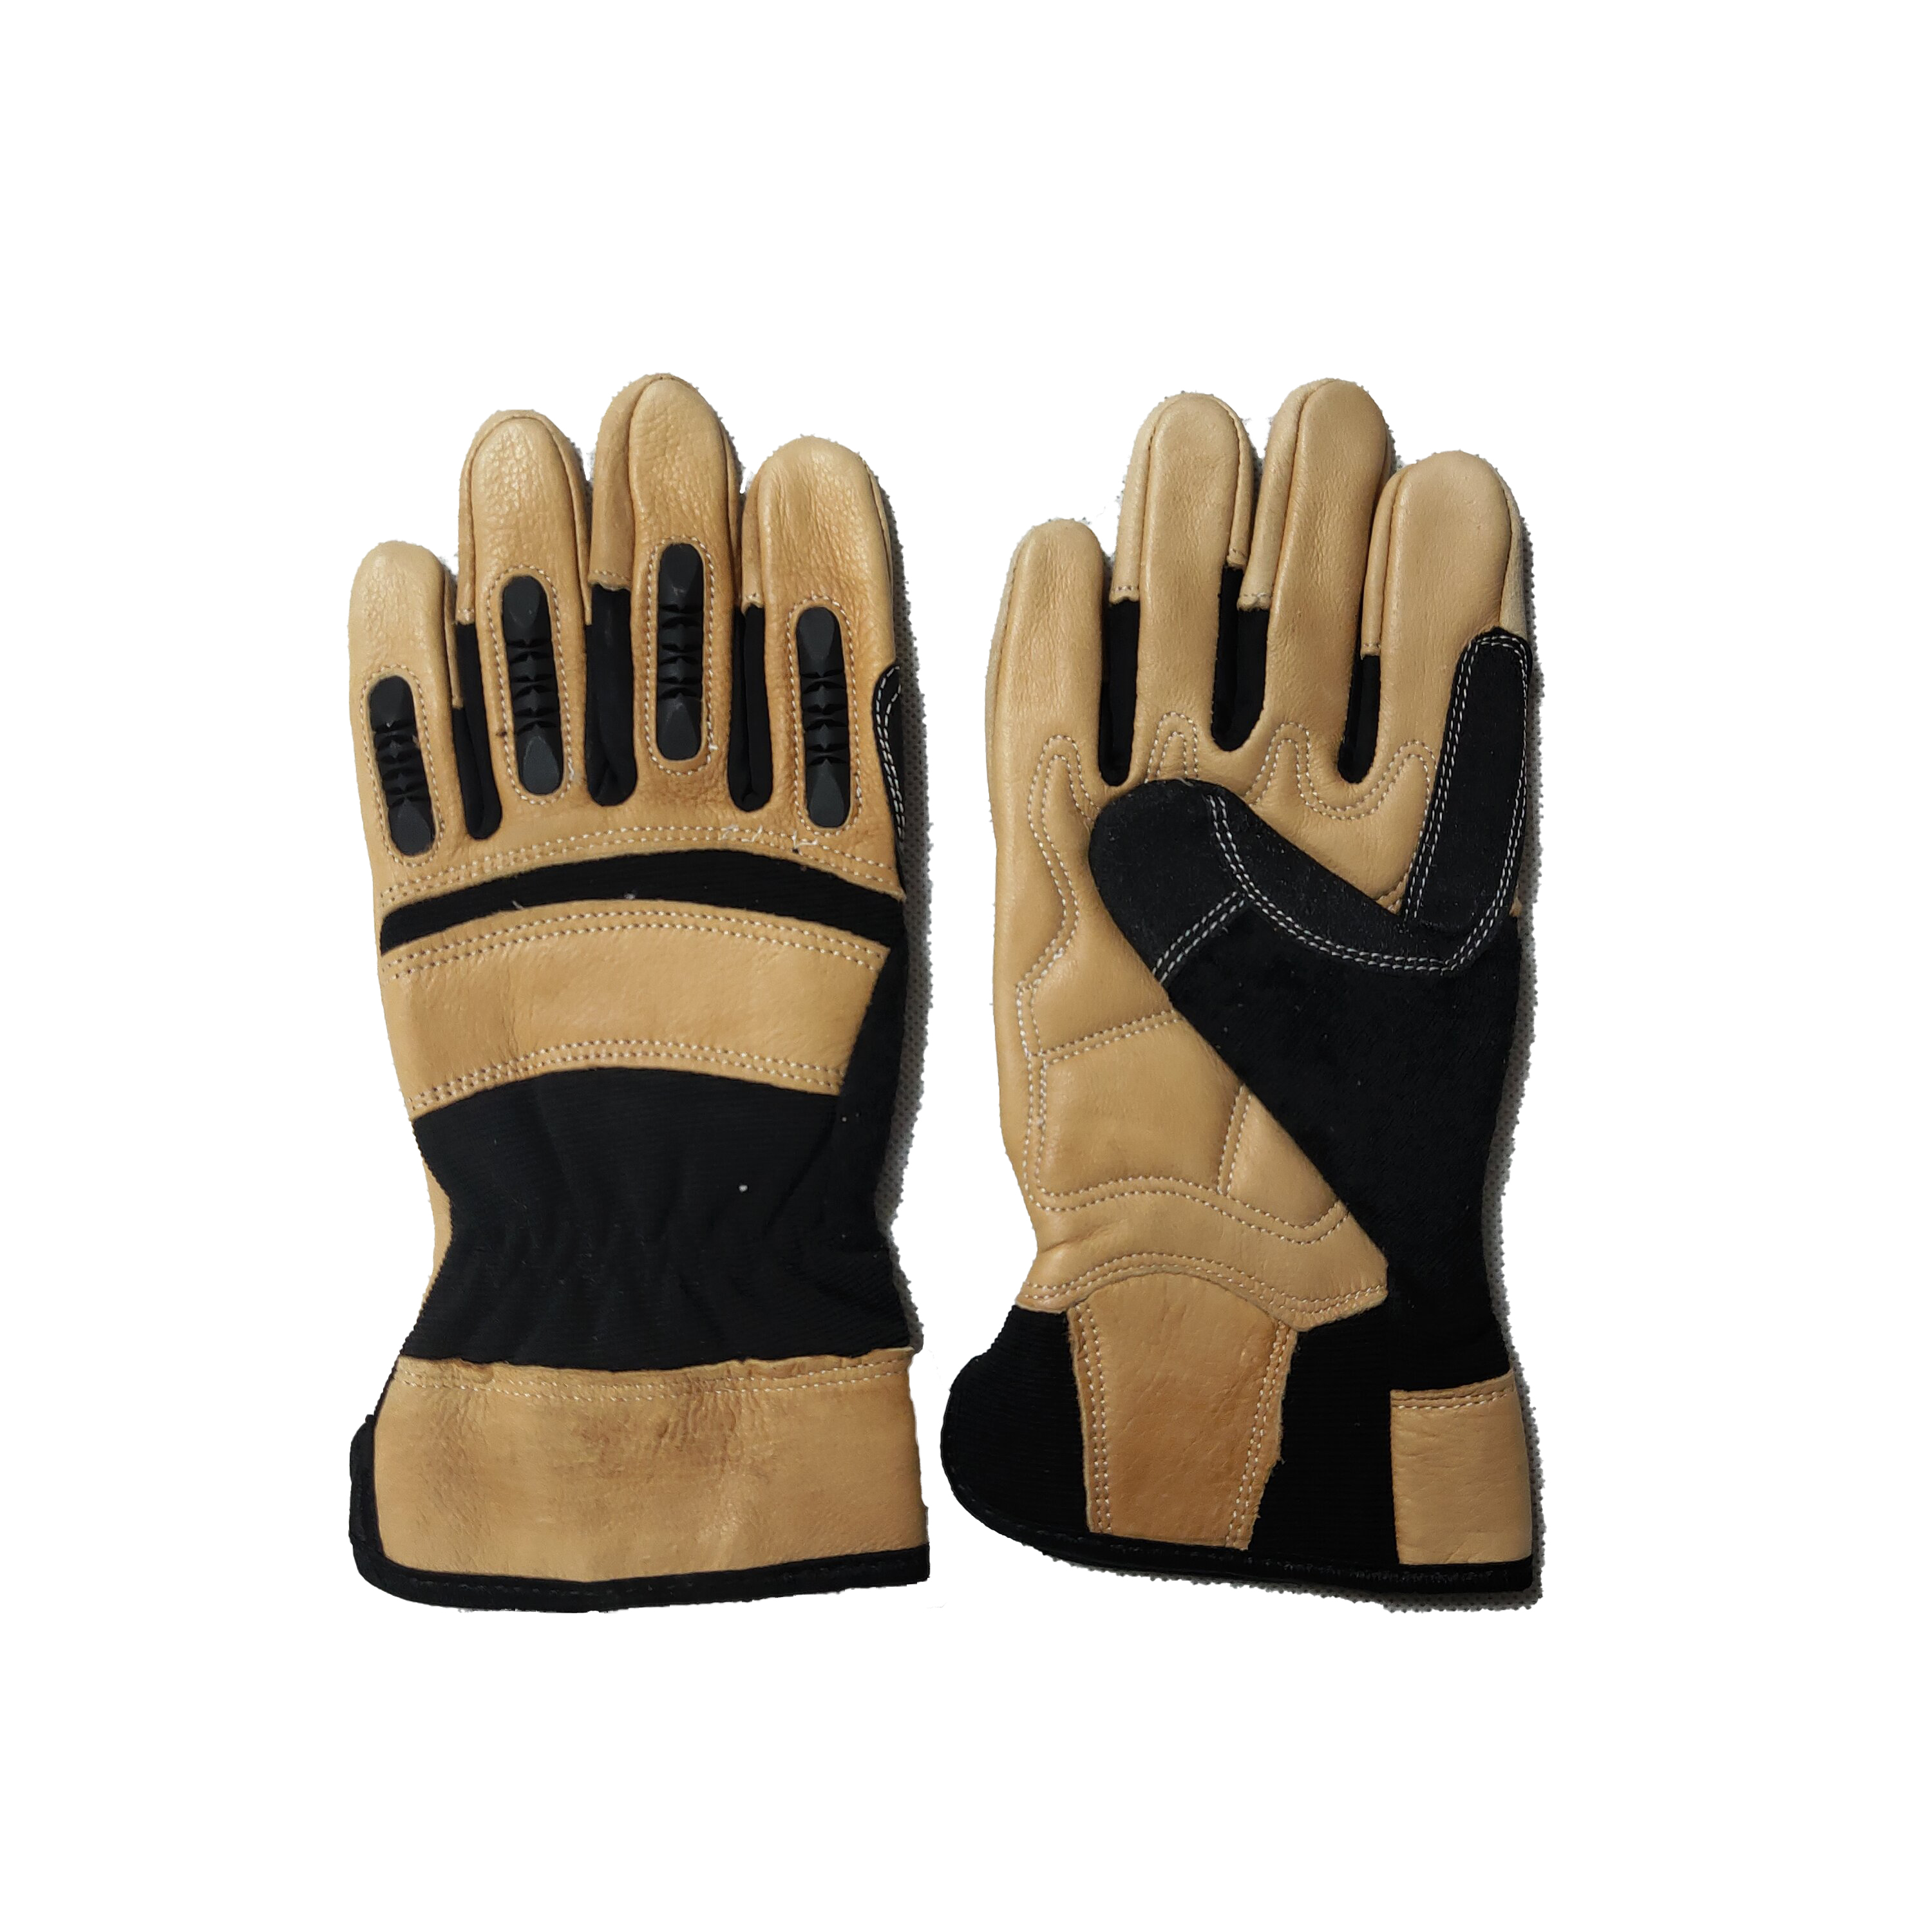 Winter cow leather Palm Patch Ottoman Knitted Mechanical safety working impact resistant Gloves